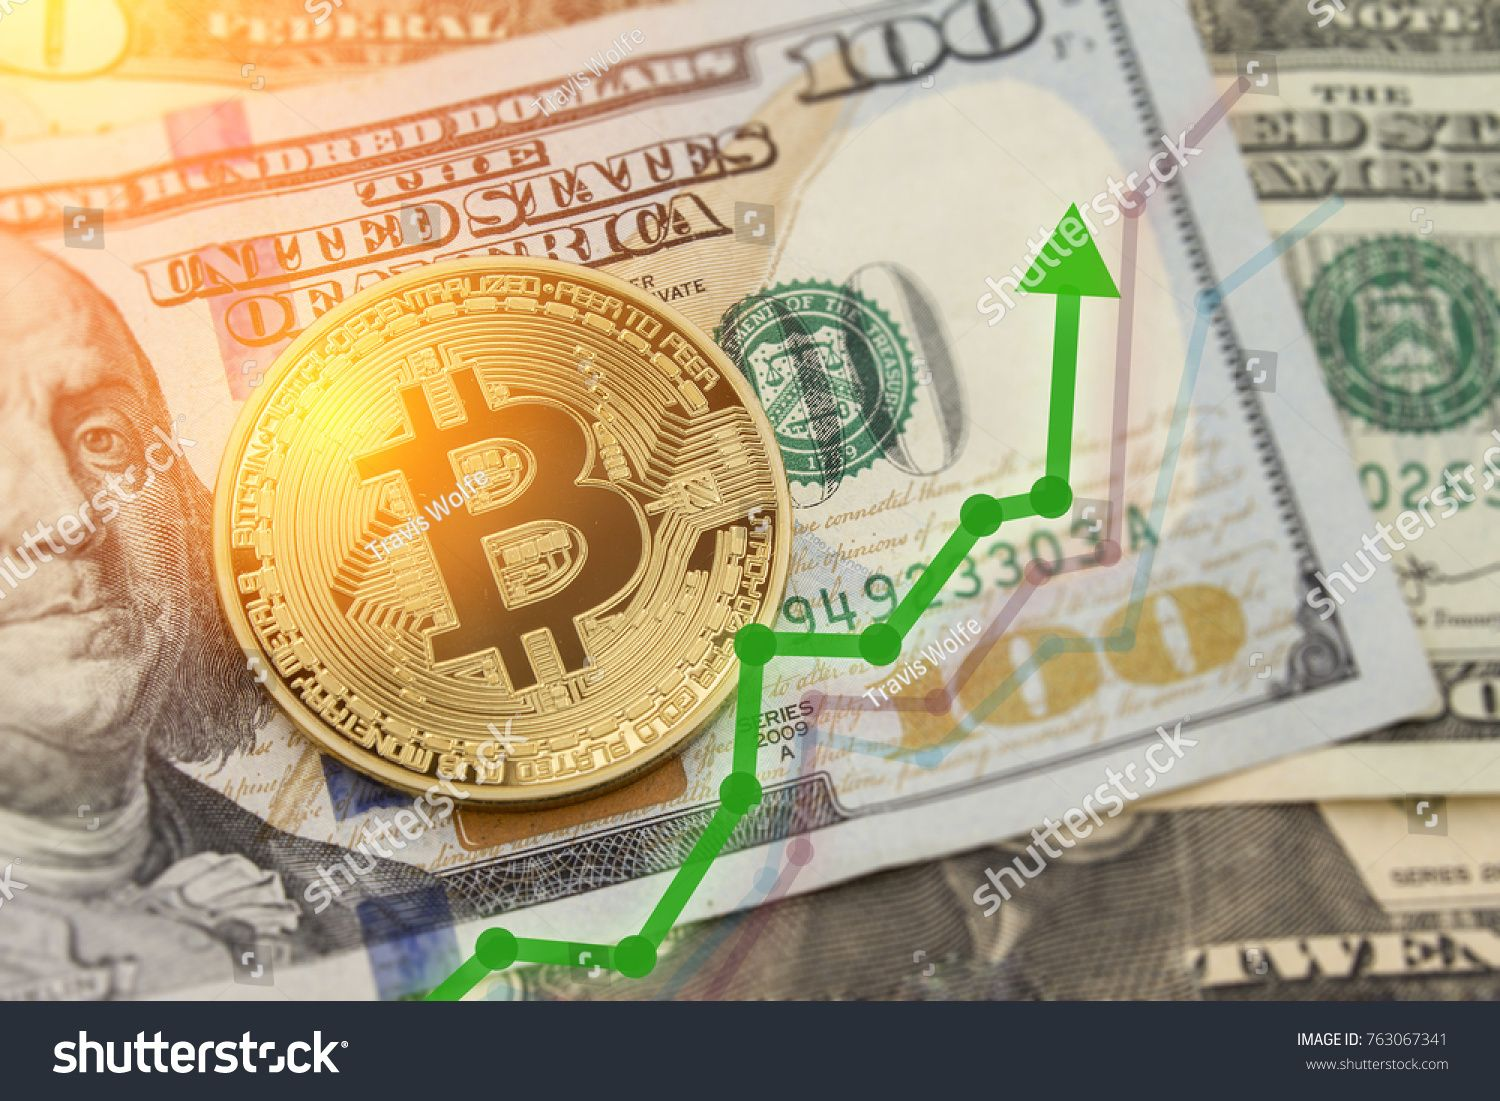 what are the top cryptocurrency rising